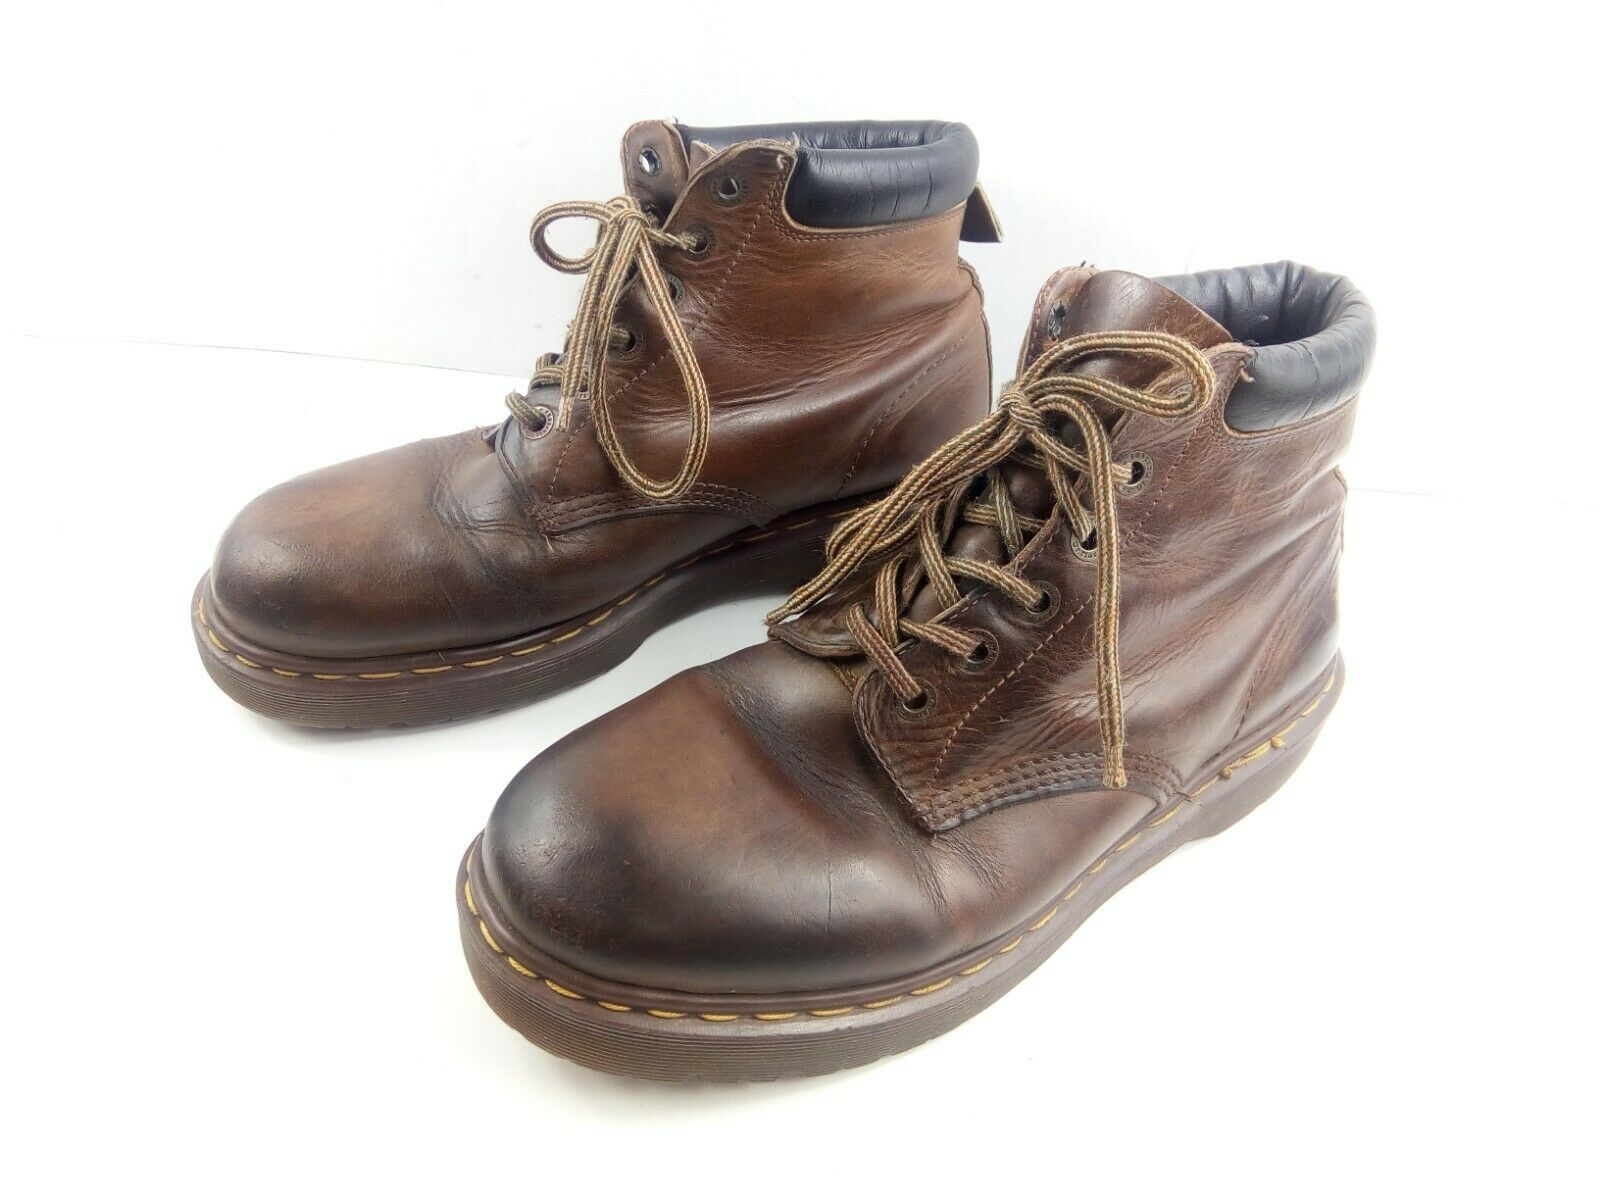 Dr Martens Men's Ankle Boots Leather Chukka Padded Collar Lace Up Work Shoe US11 image 2